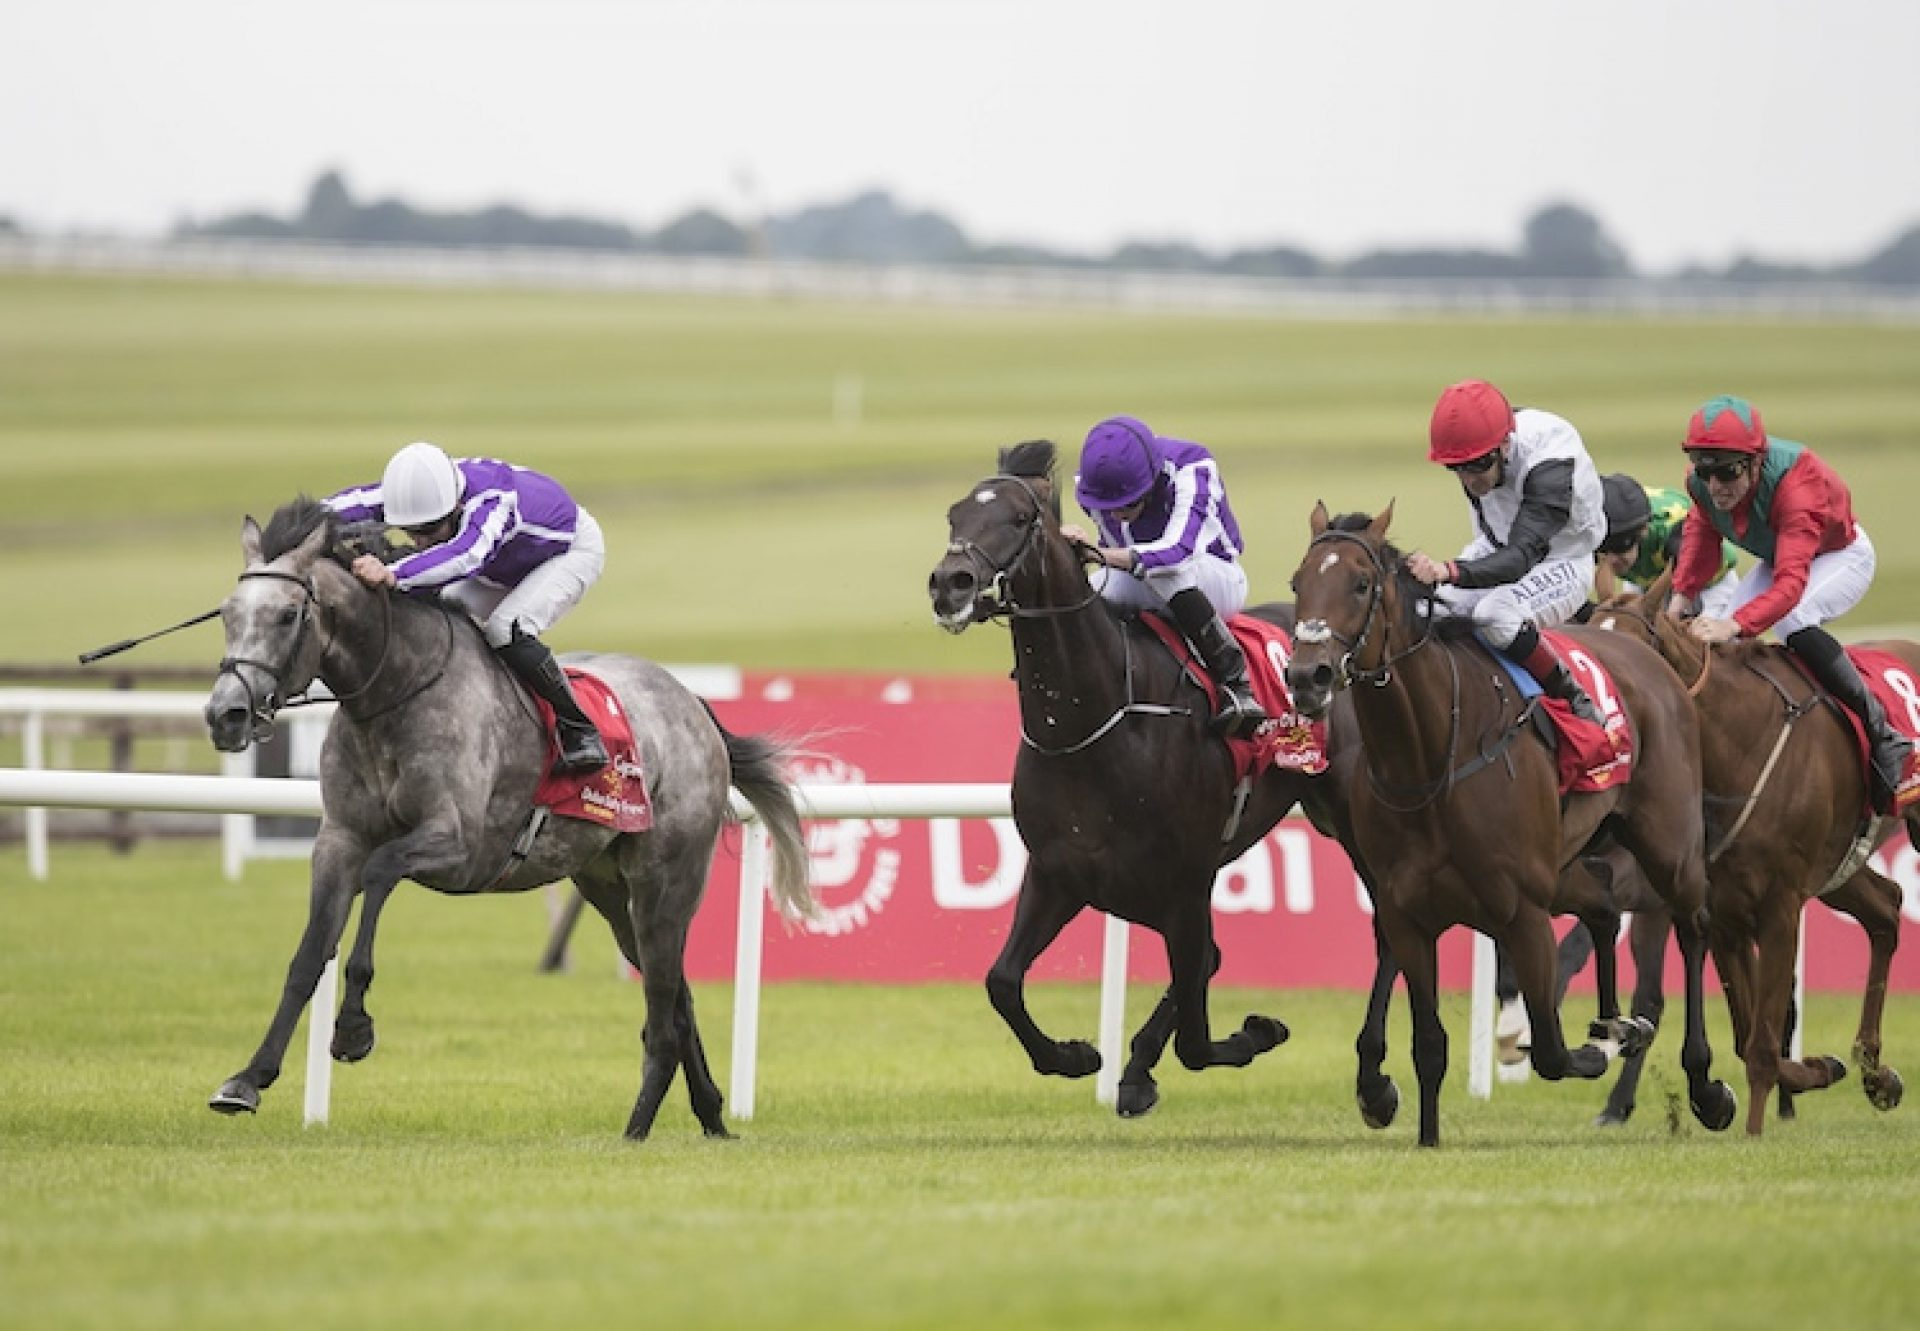 Kew Gardens (Galileo) winning the G1 St Leger at Doncaster